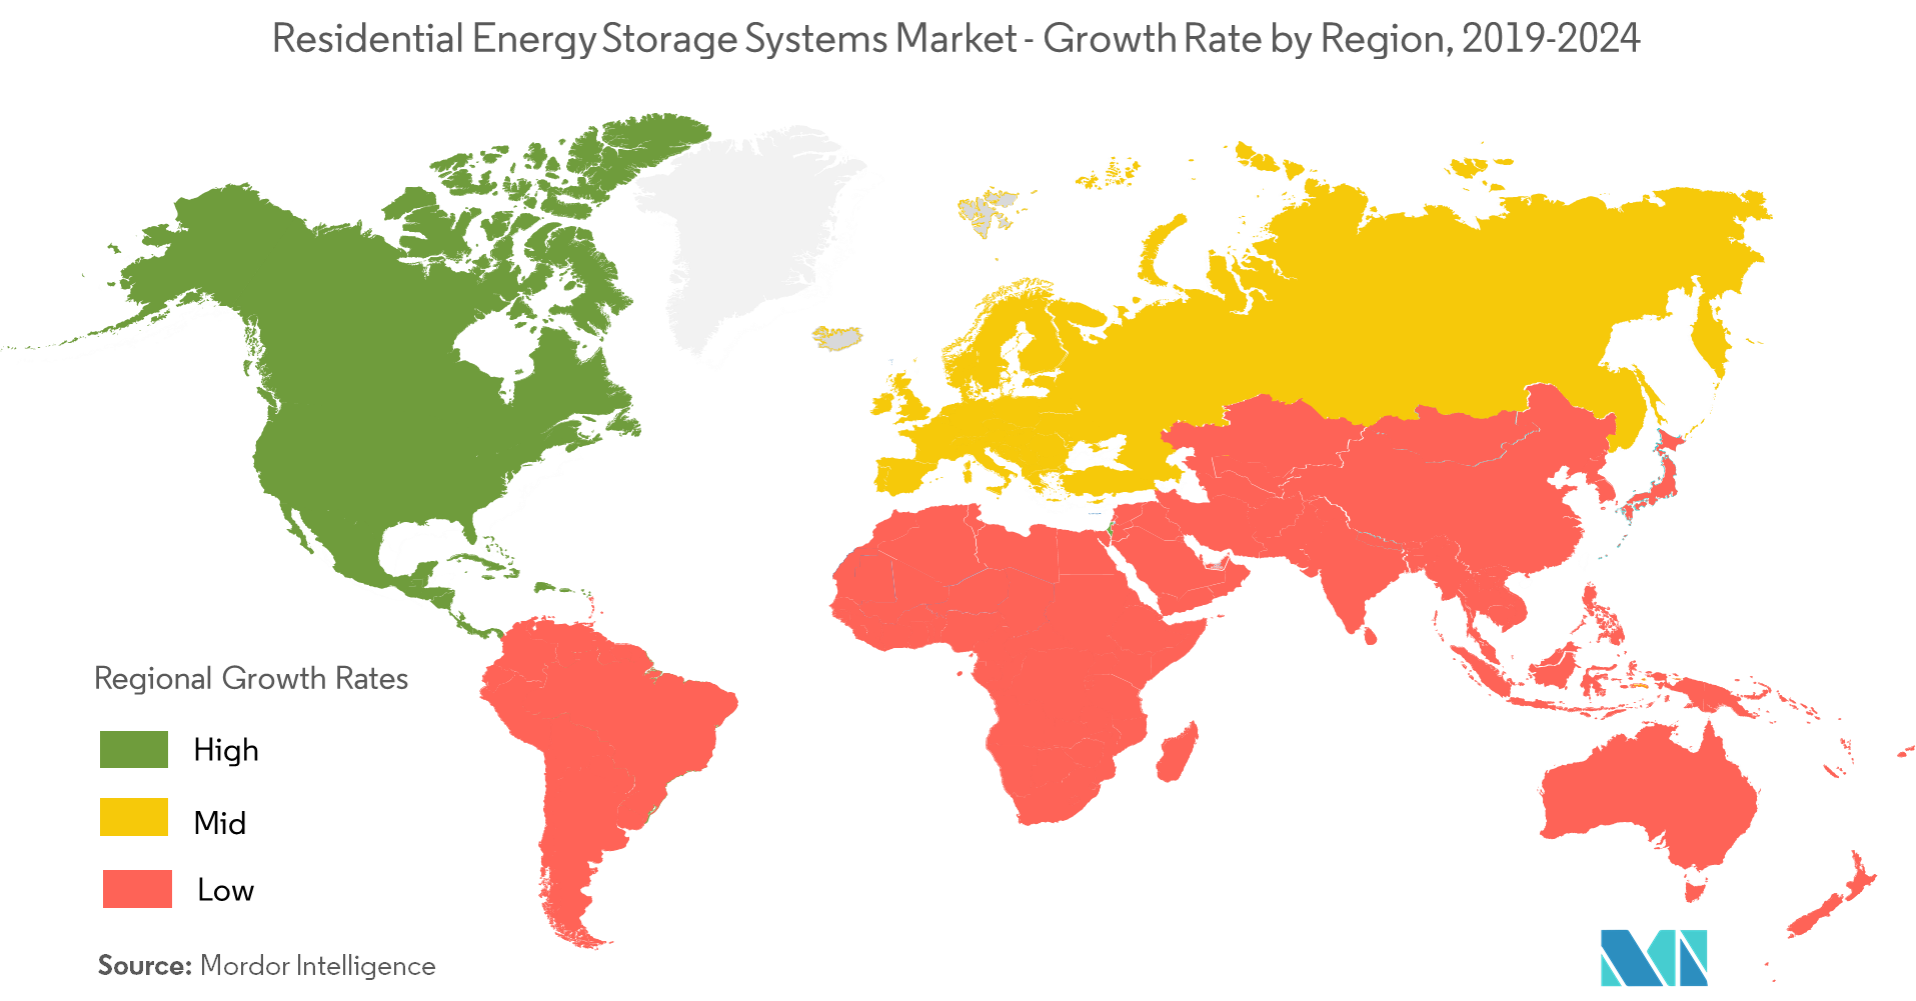 Residential Energy Storage Systems Market - Regional